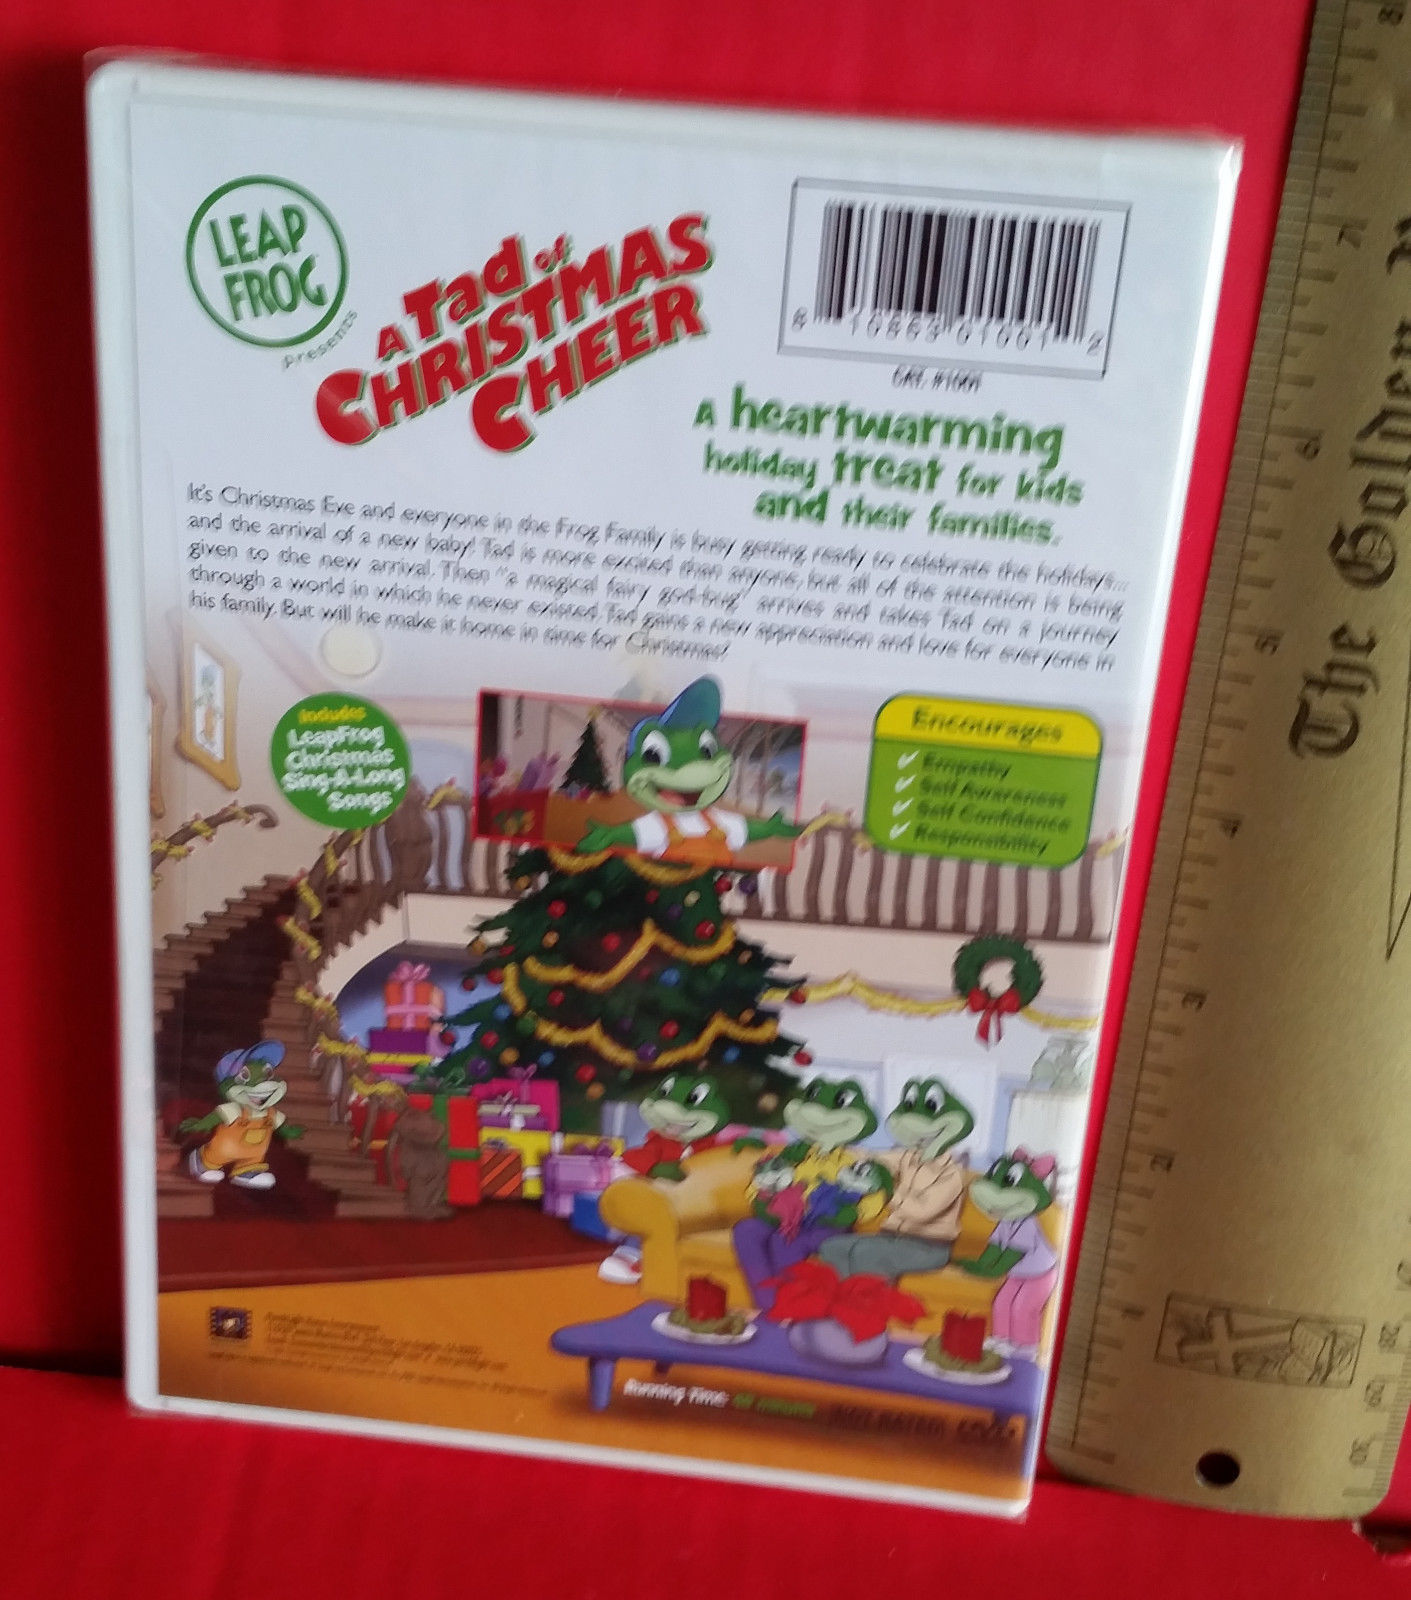 Leapfrog A Tad Of Christmas Cheer Dvd.Education Holiday Video Dvd A Tad Of And 11 Similar Items